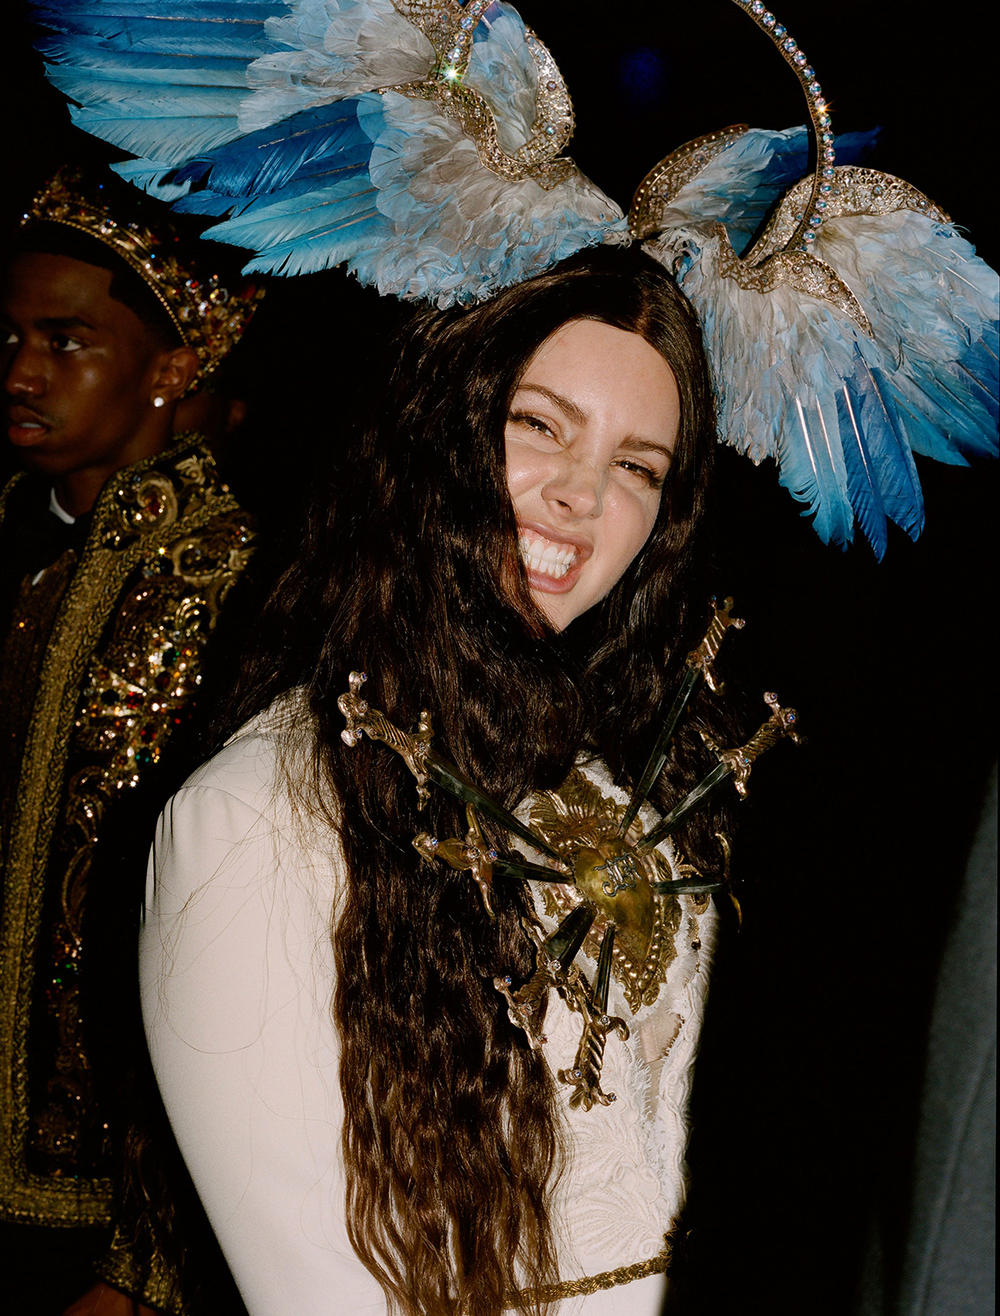 Met Gala 2018 Lana Del Rey Gucci Dress headpiece Candid